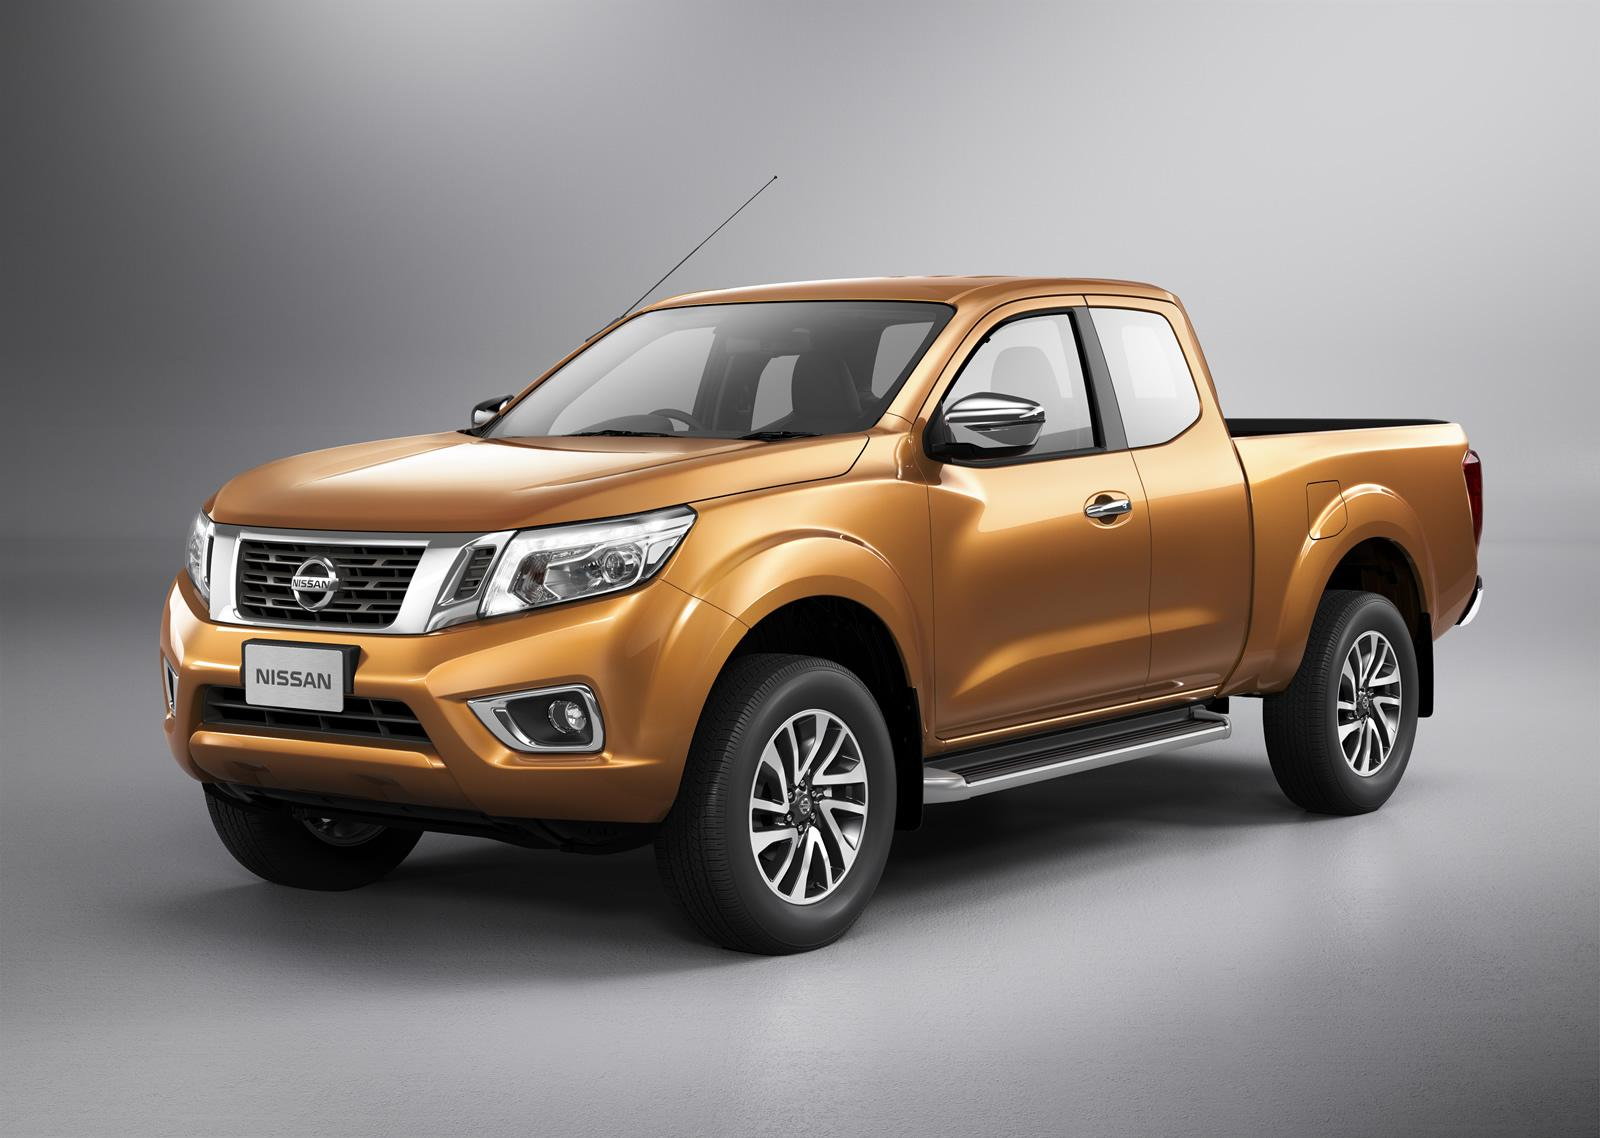 nissan power suvs new for cars models j articles car vans guides truck d buyers trucks and